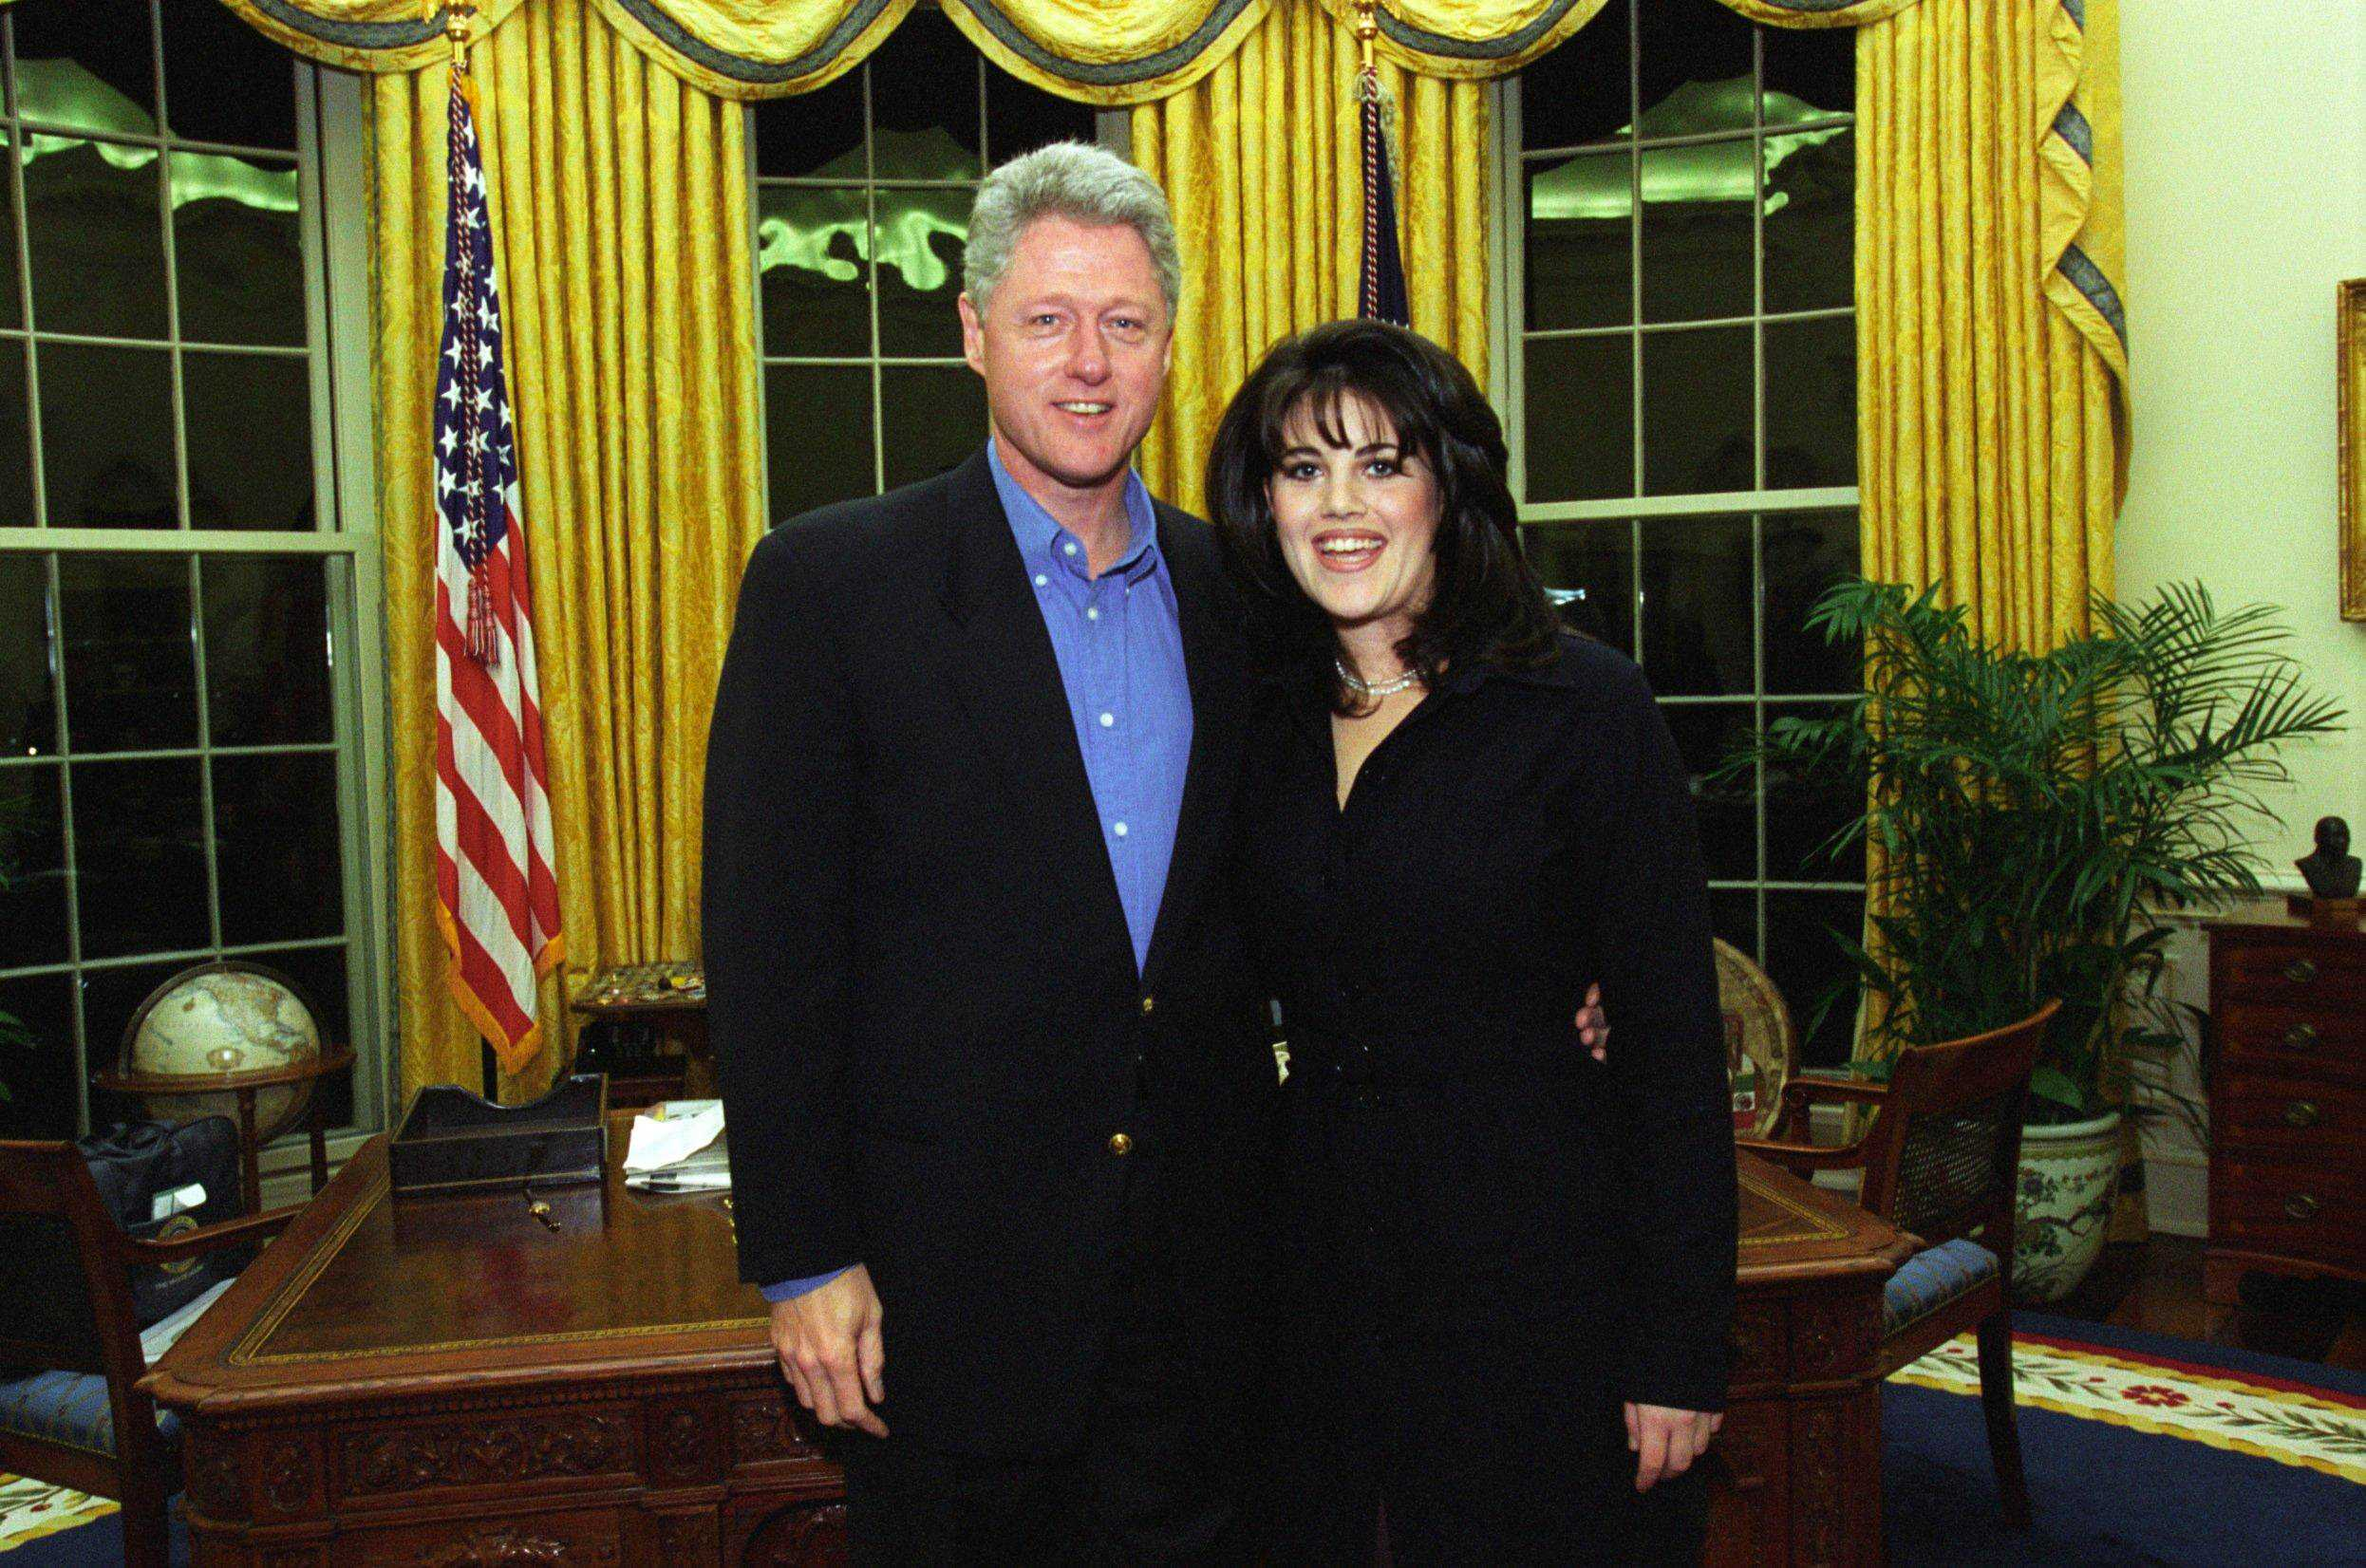 #MeToo, Monica Lewinsky's story 20 years later